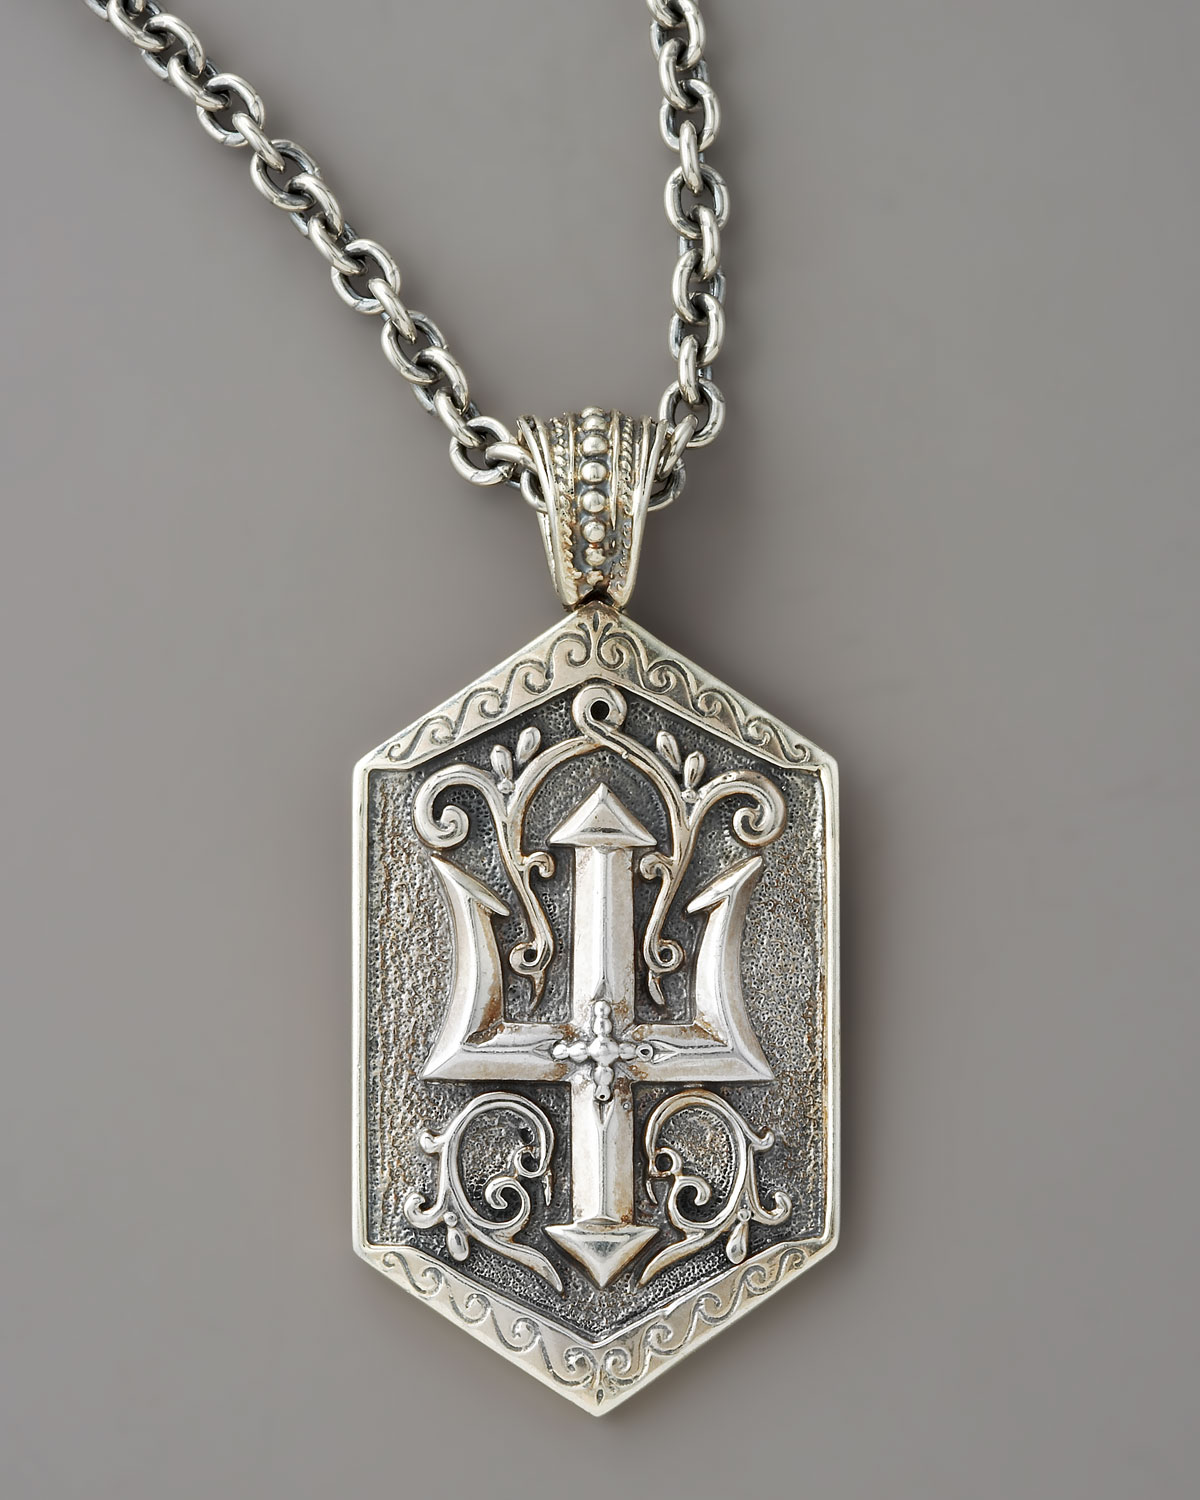 Lyst konstantino poseidon trident tag pendant in metallic for men gallery mozeypictures Choice Image